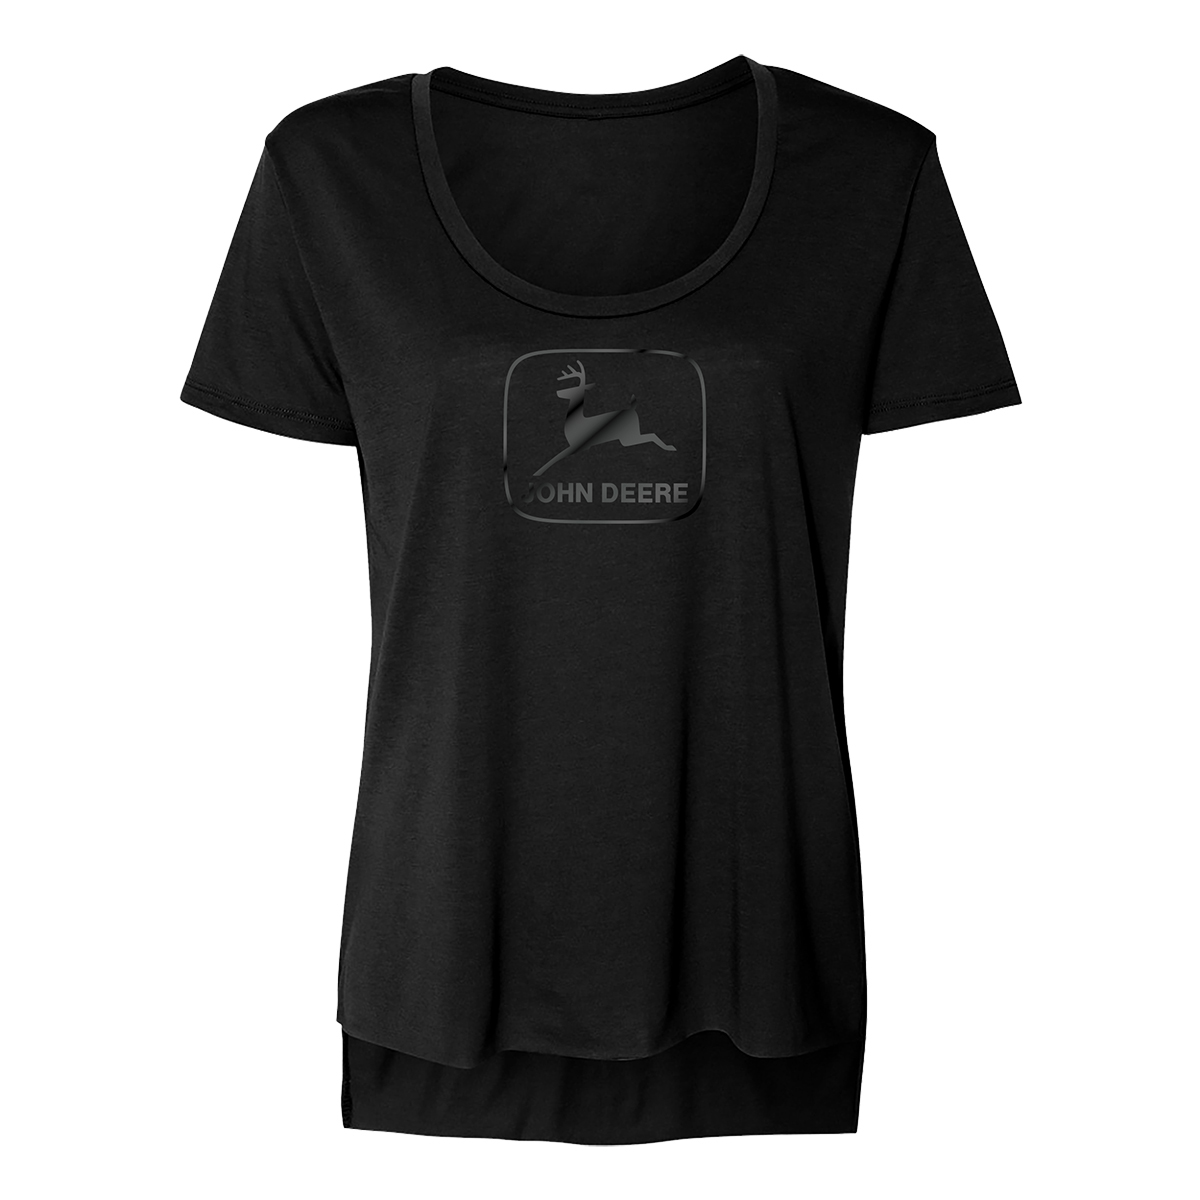 20% Off Women's Shirts